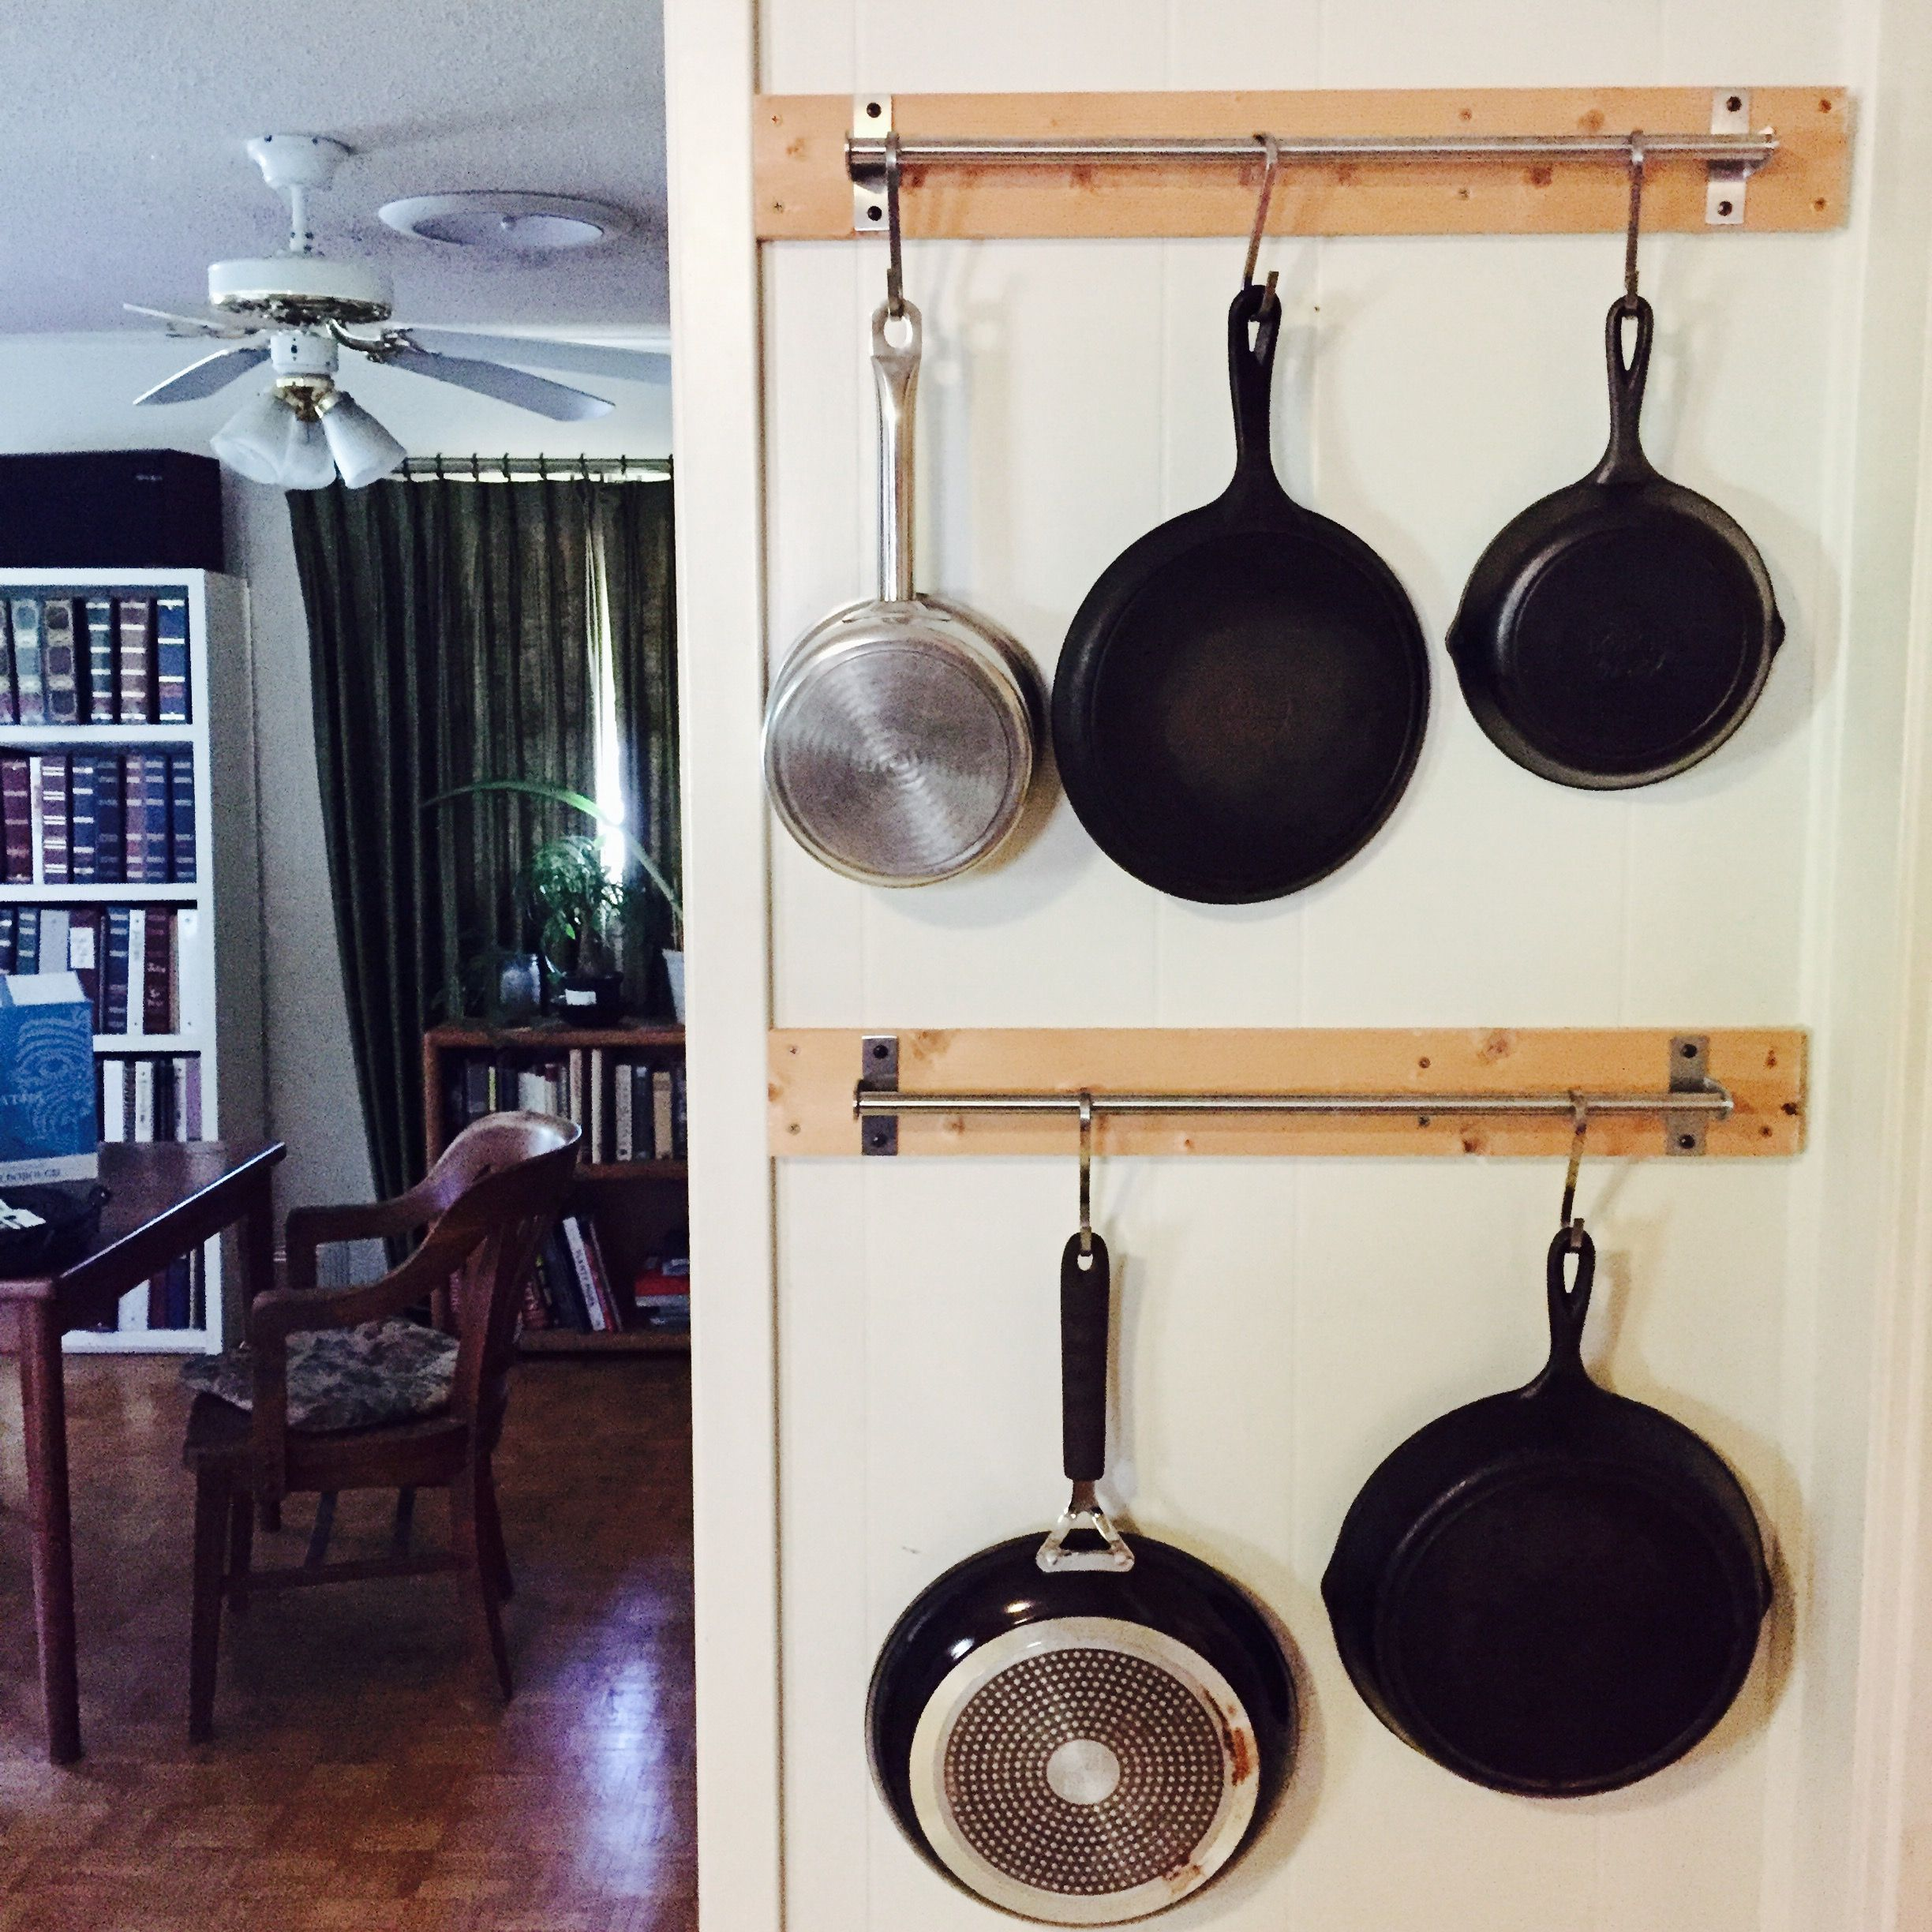 Ikea Hanging Rods Cast Iron Pans